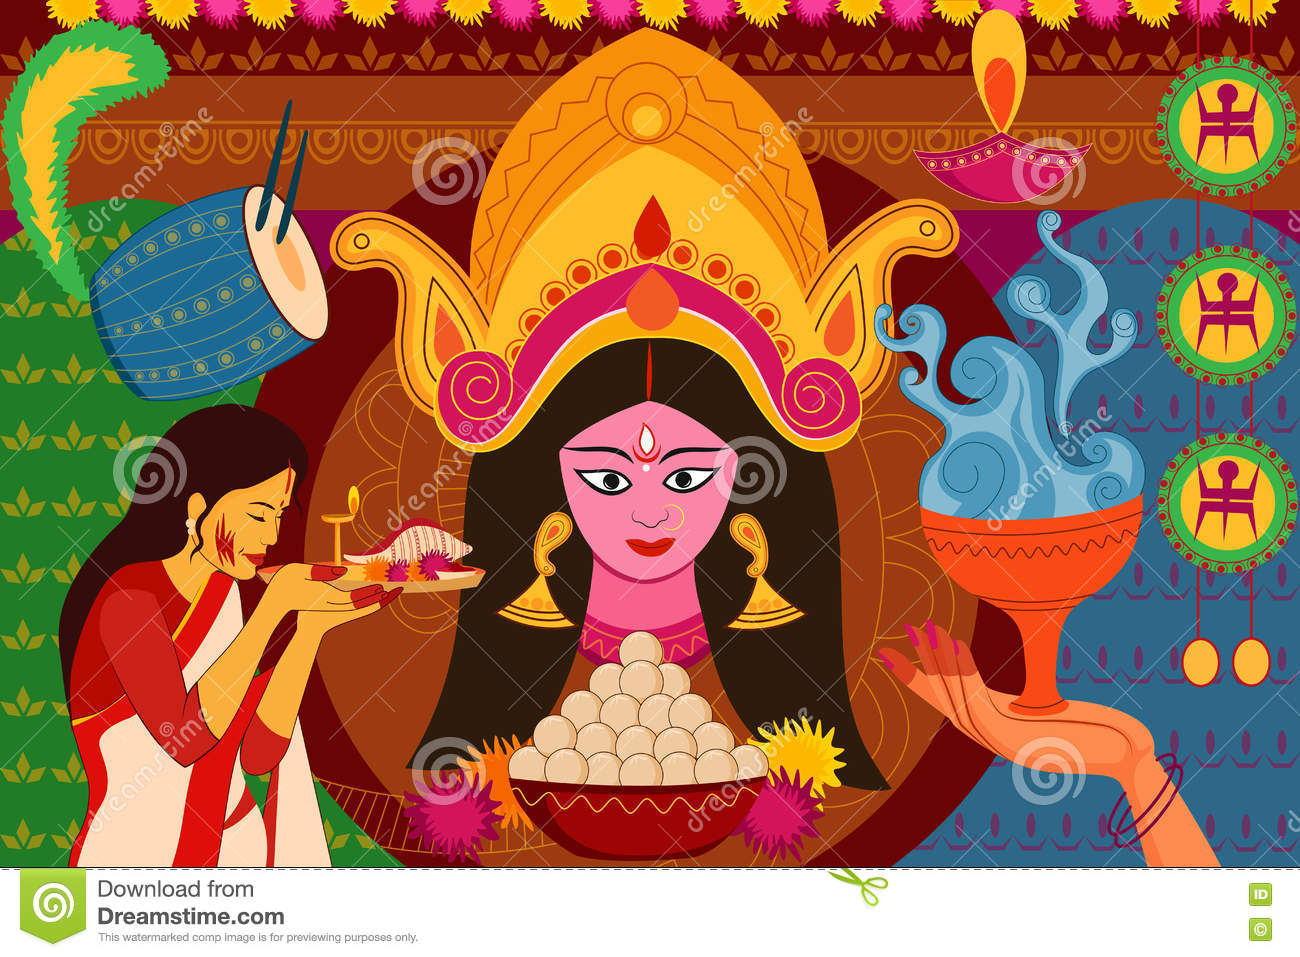 Happy Durga Puja Festival Background Kitsch Art India Stock Vector  Image: 77708754